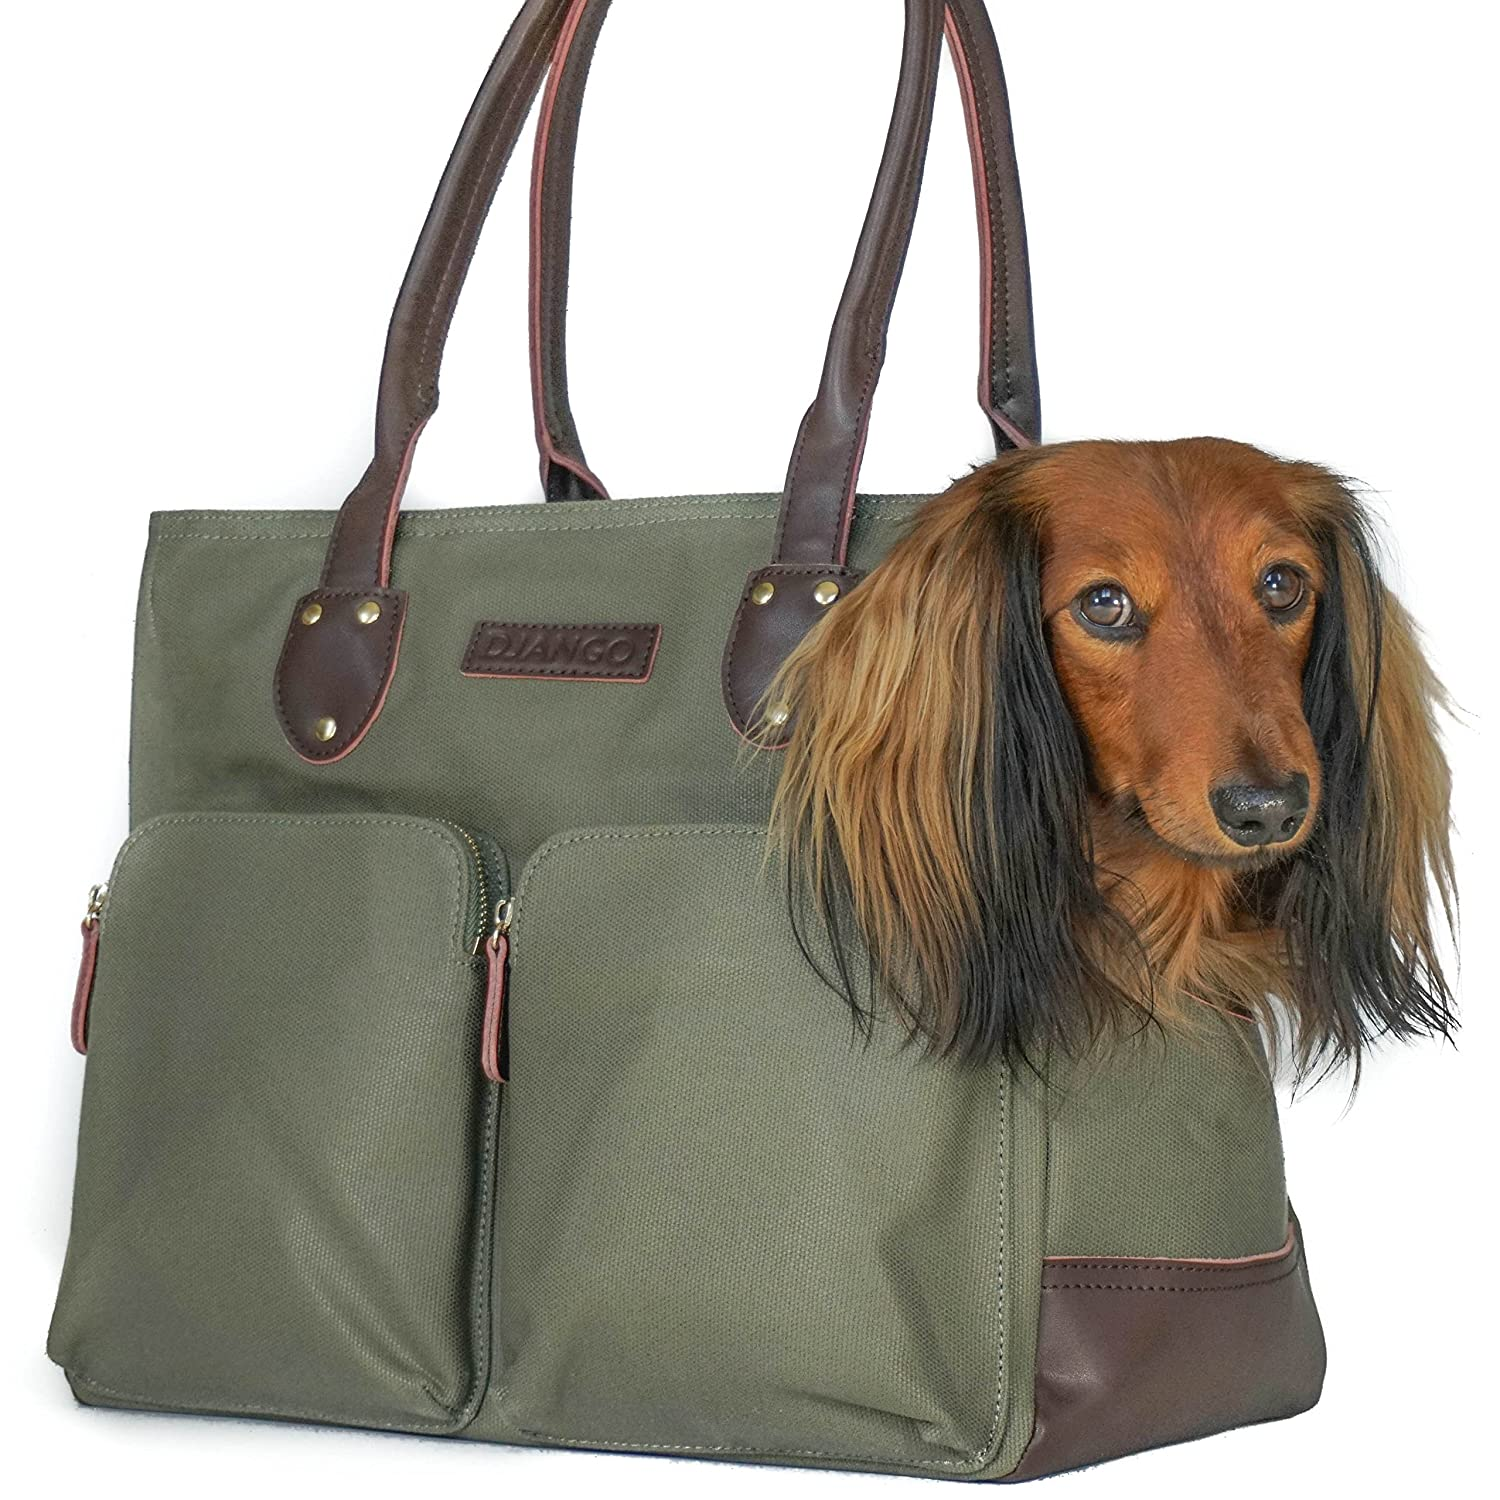 The The DJANGO Pet Tote travel product recommended by Stephanie Wiggins on Lifney.